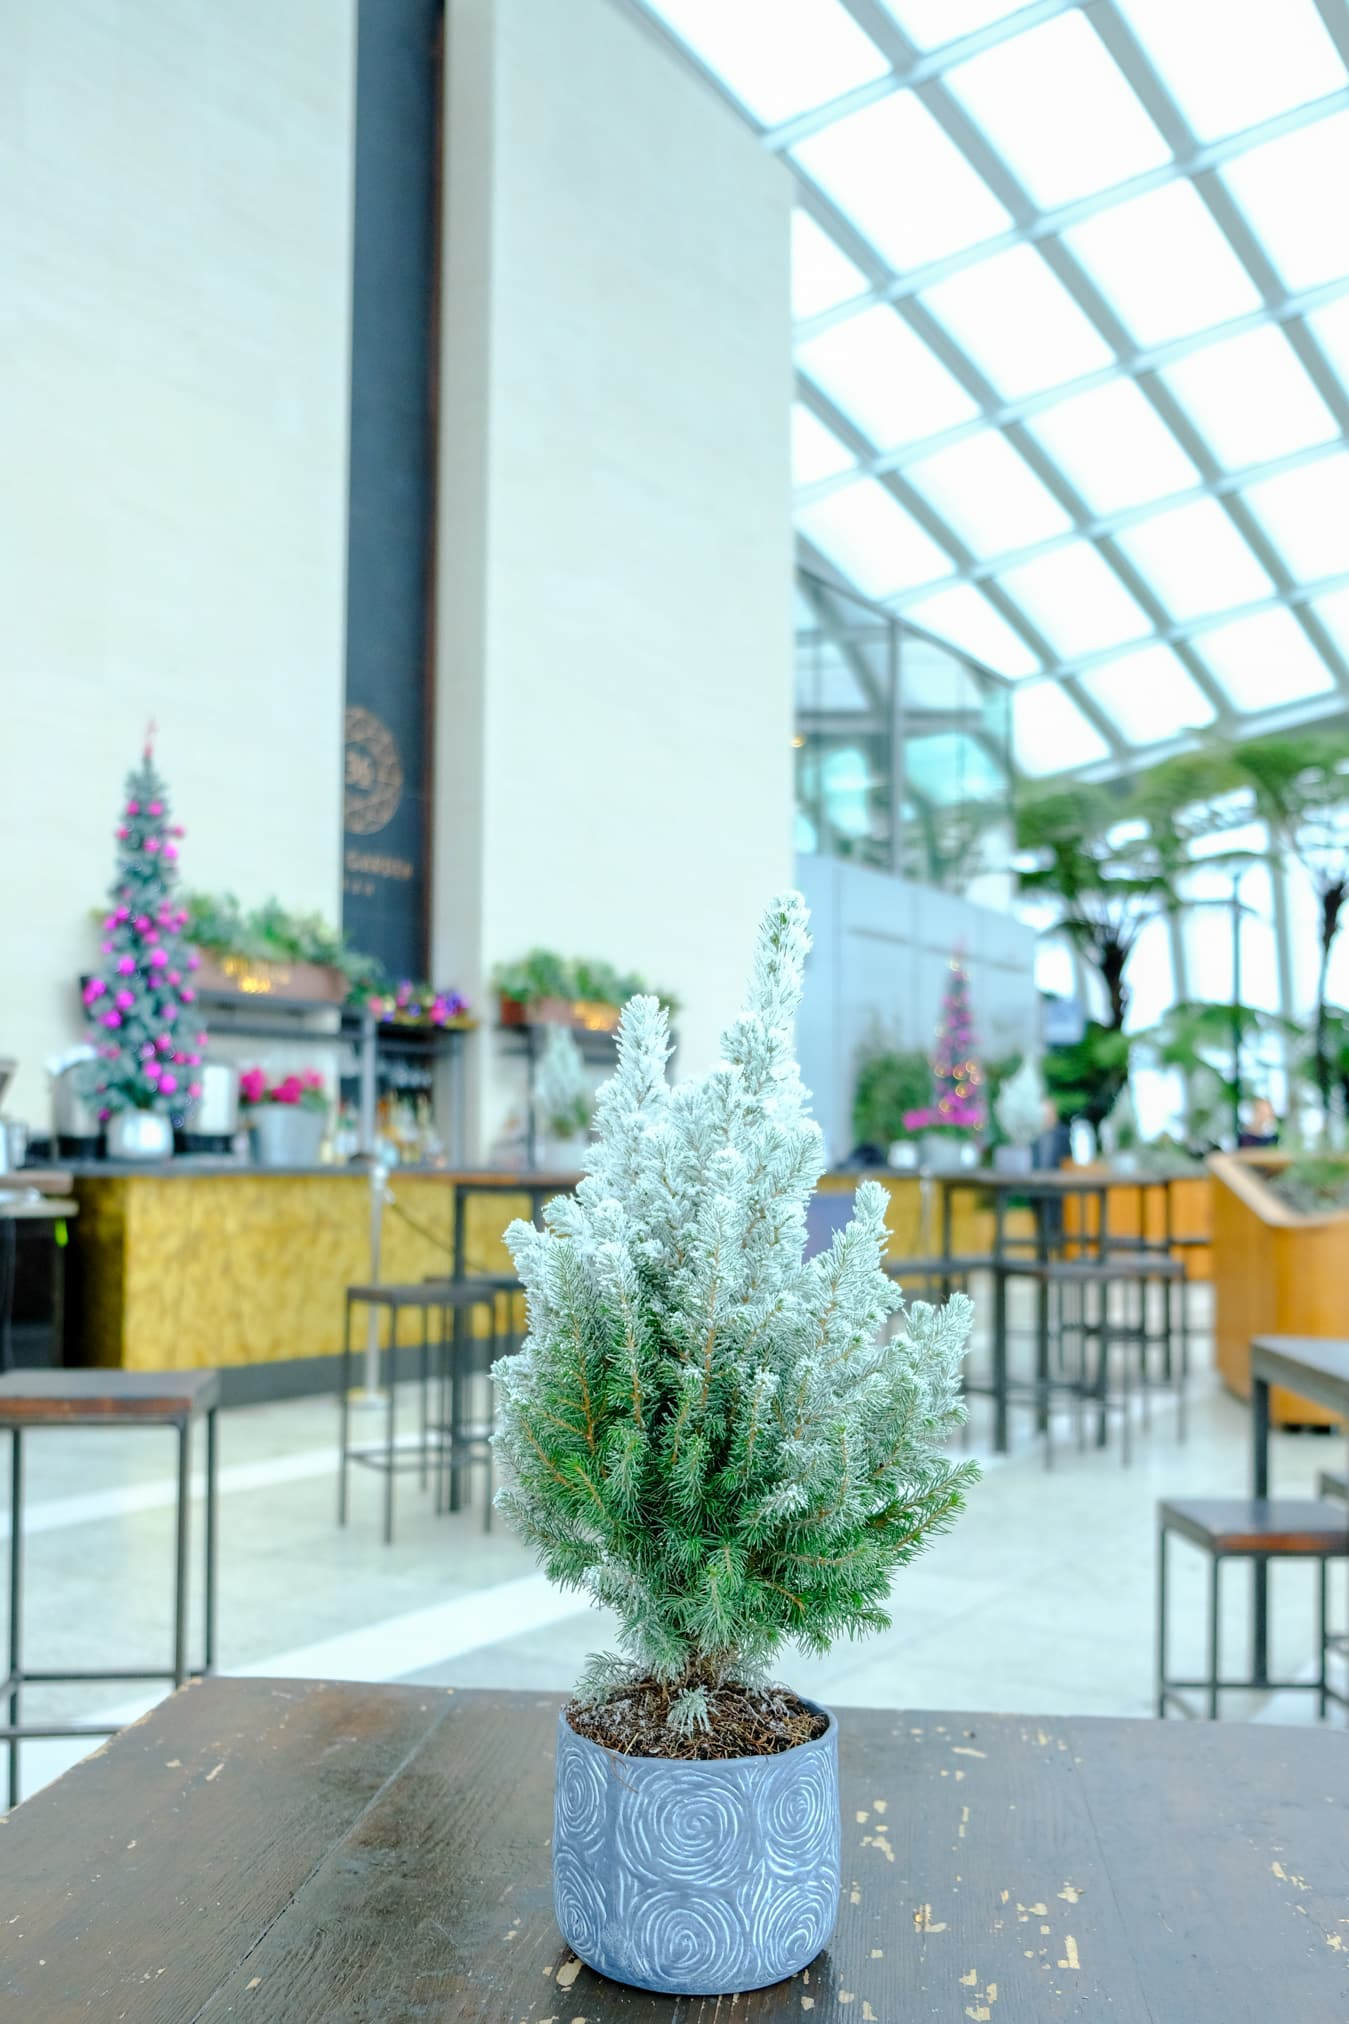 breakfast christmas sky garden london